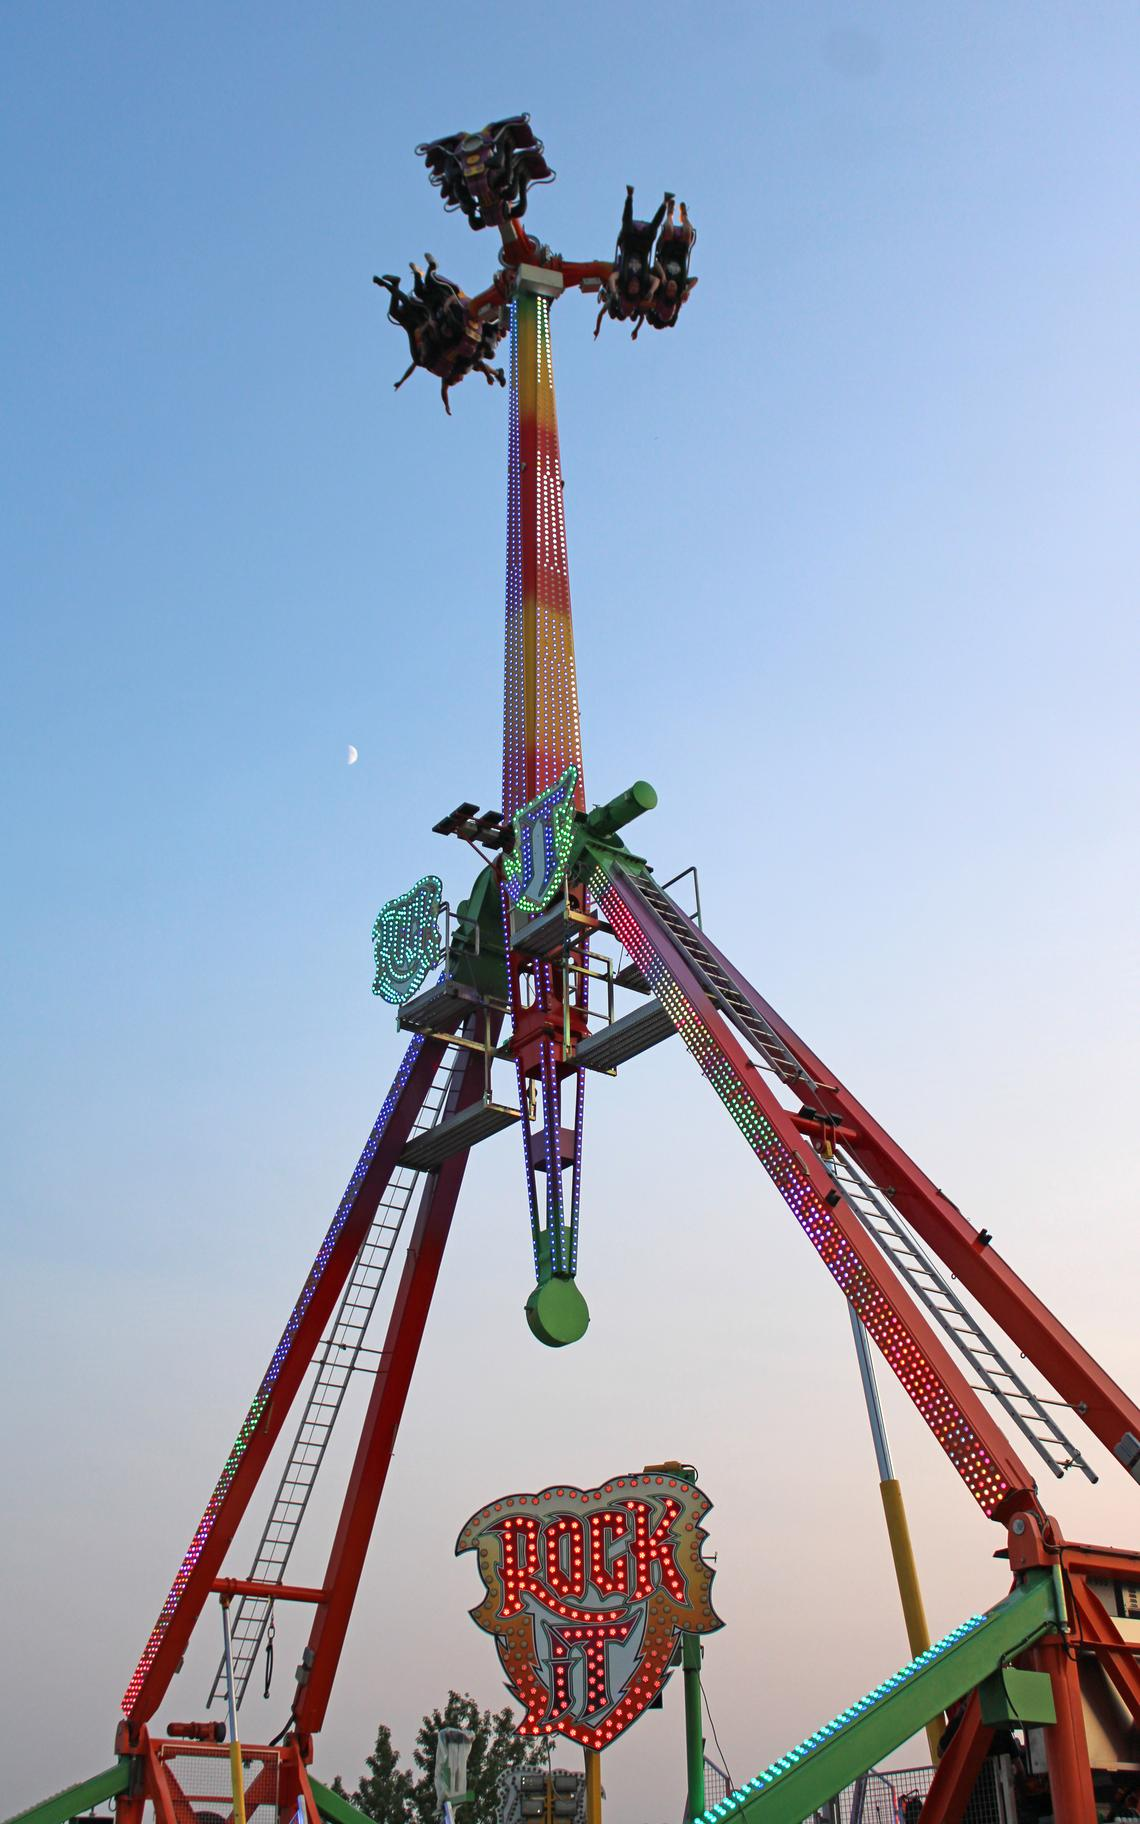 This popular ride on the midway flung riders sky high.